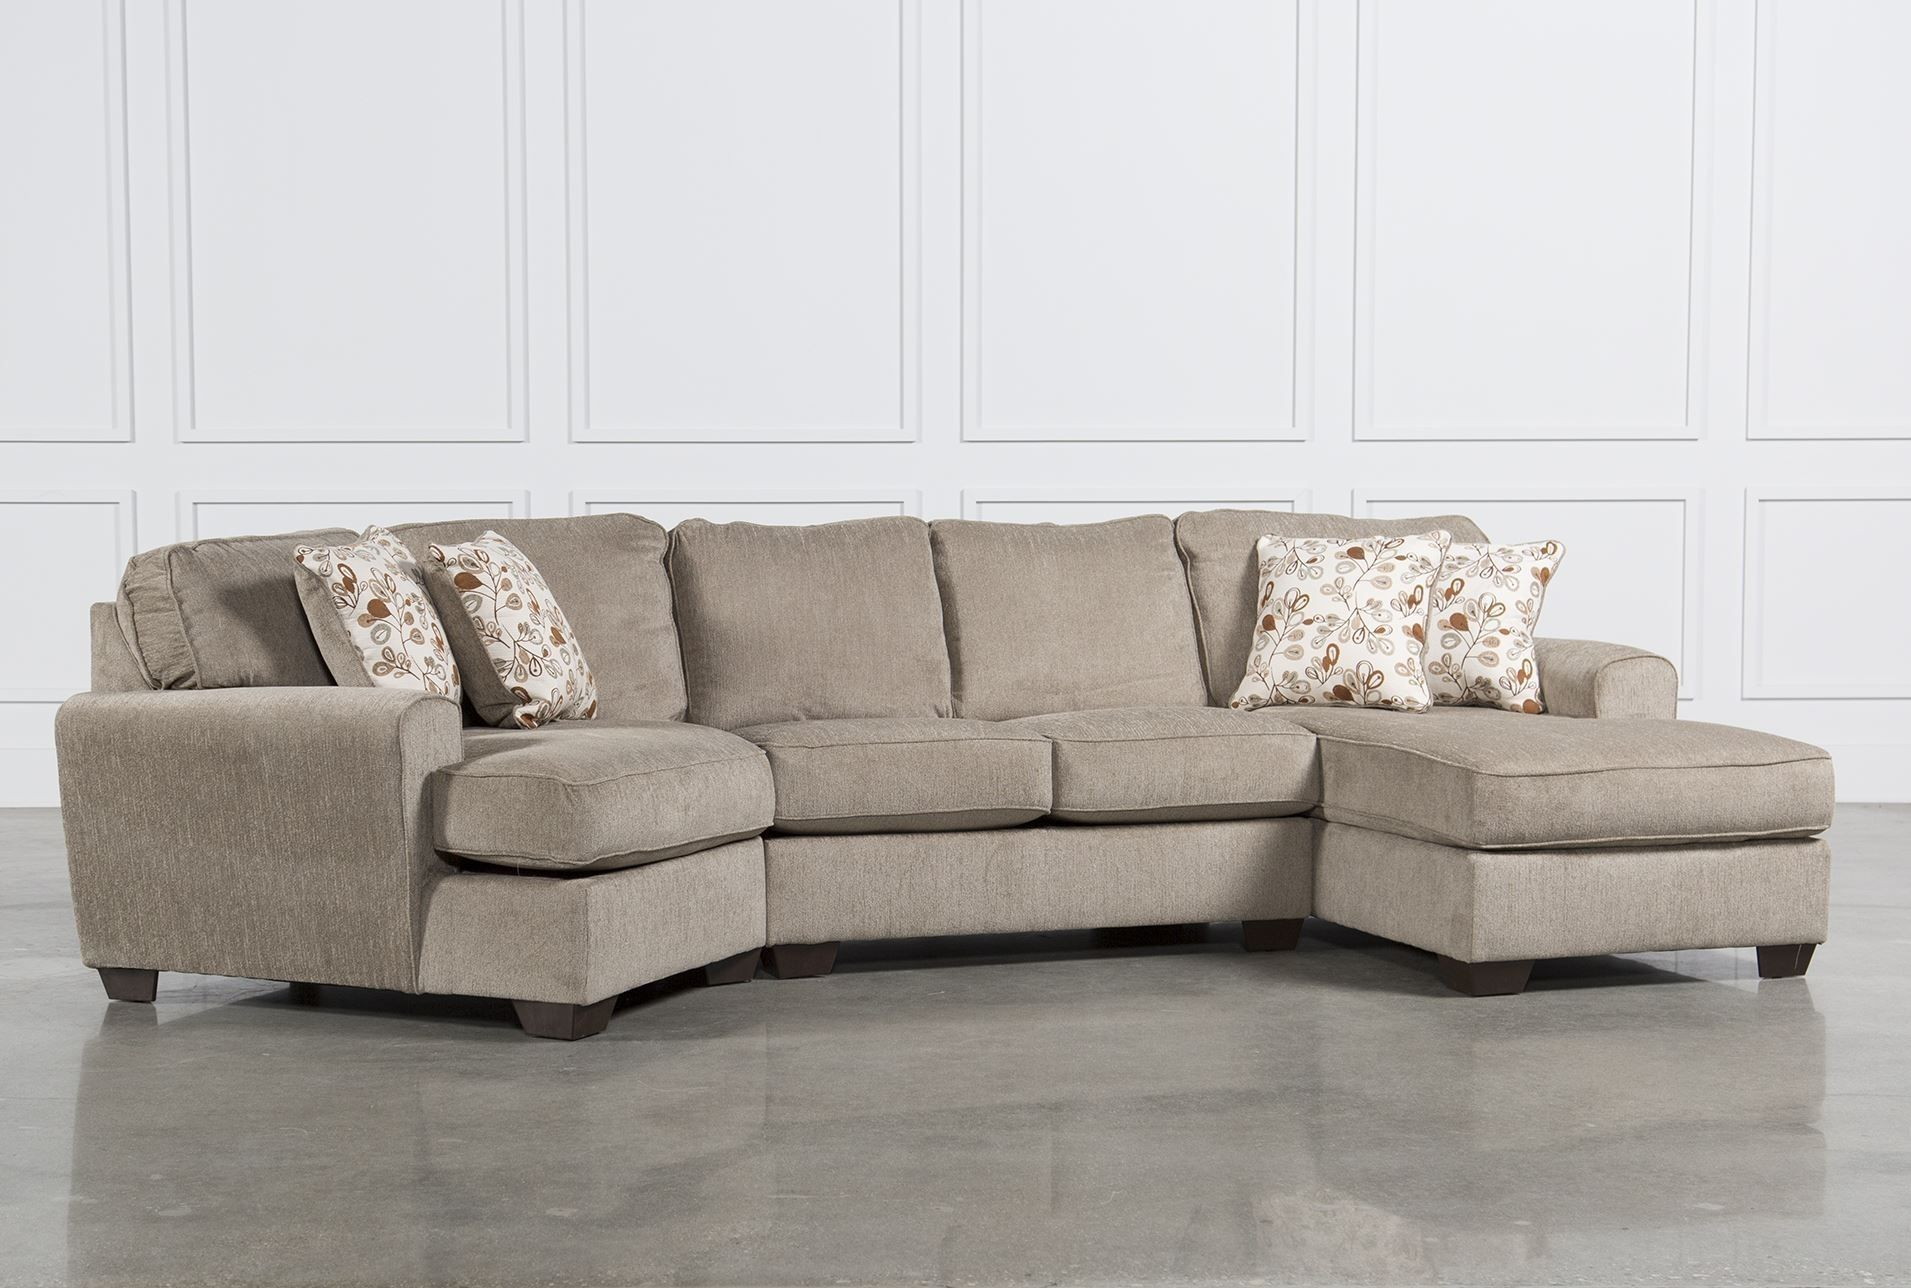 Angled Sofa Sectional Creative Interior House Design From The Webs